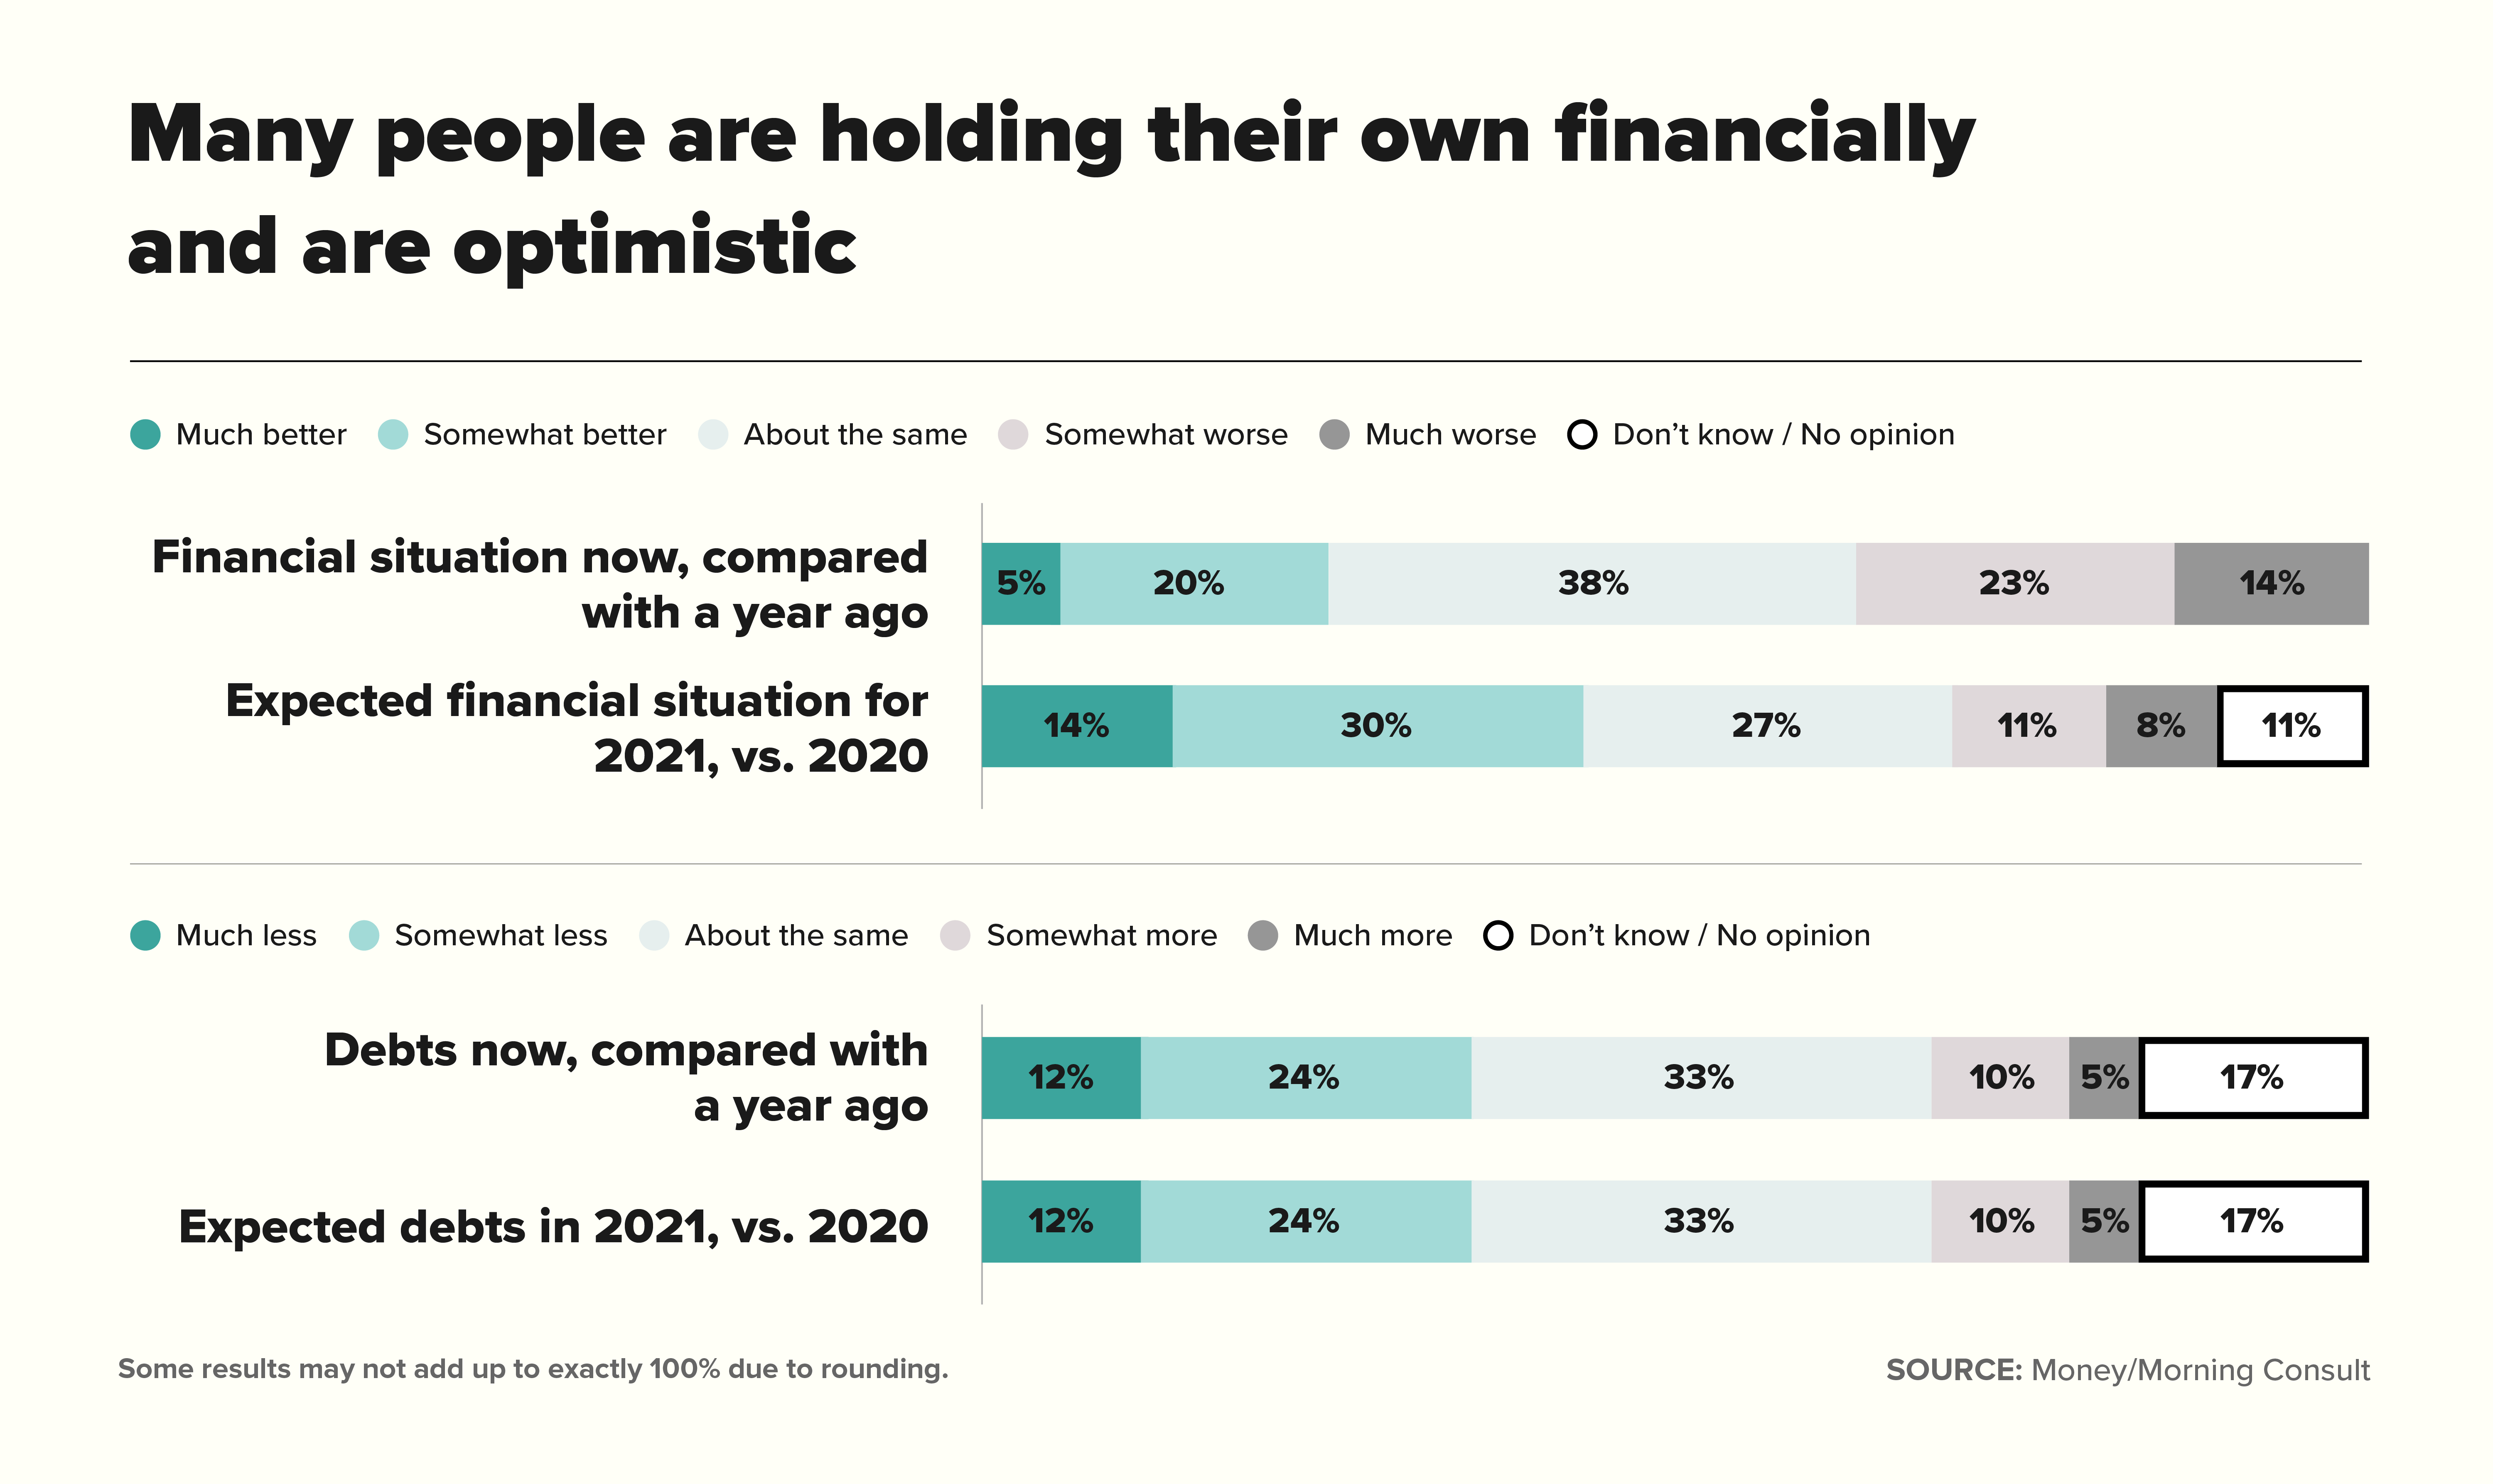 Chart for Many people are holding their own financially and are optimistic